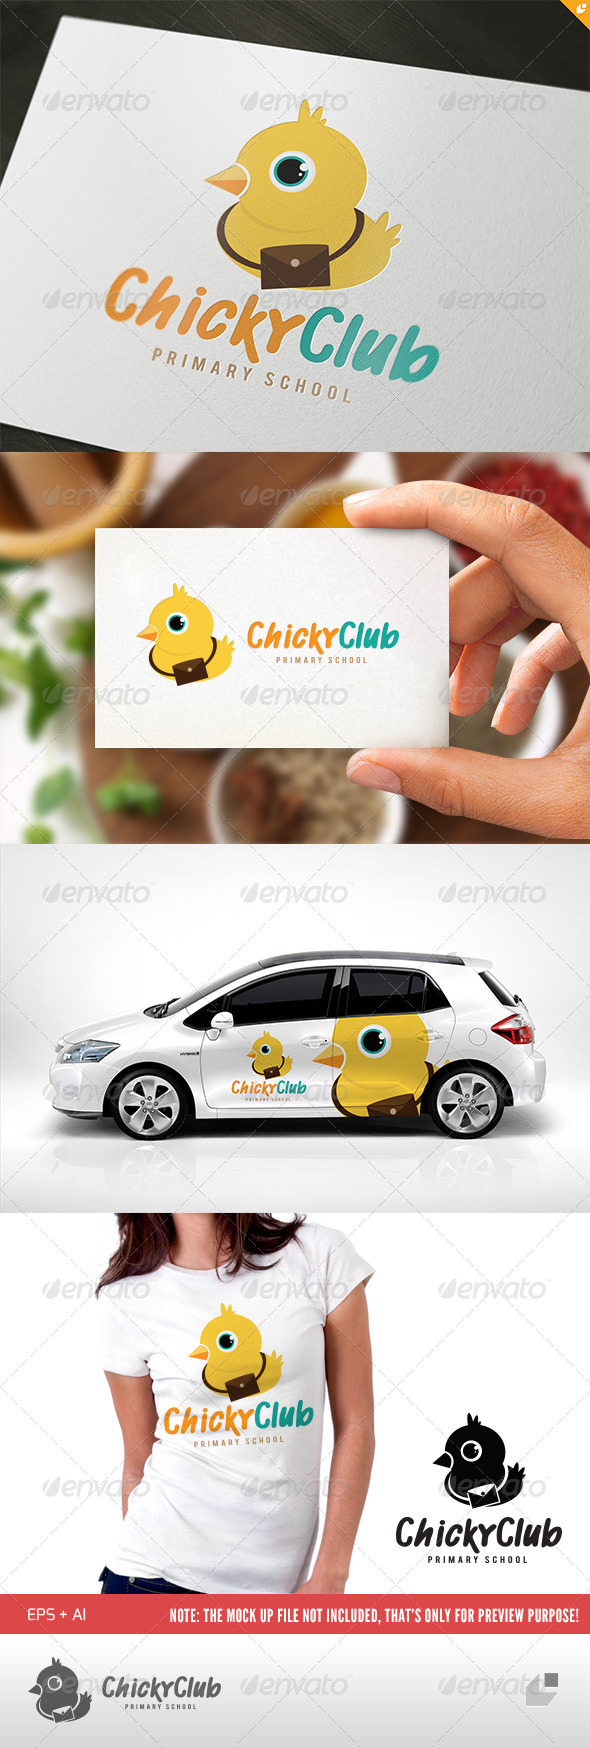 GraphicRiver Chicky Club 5140563